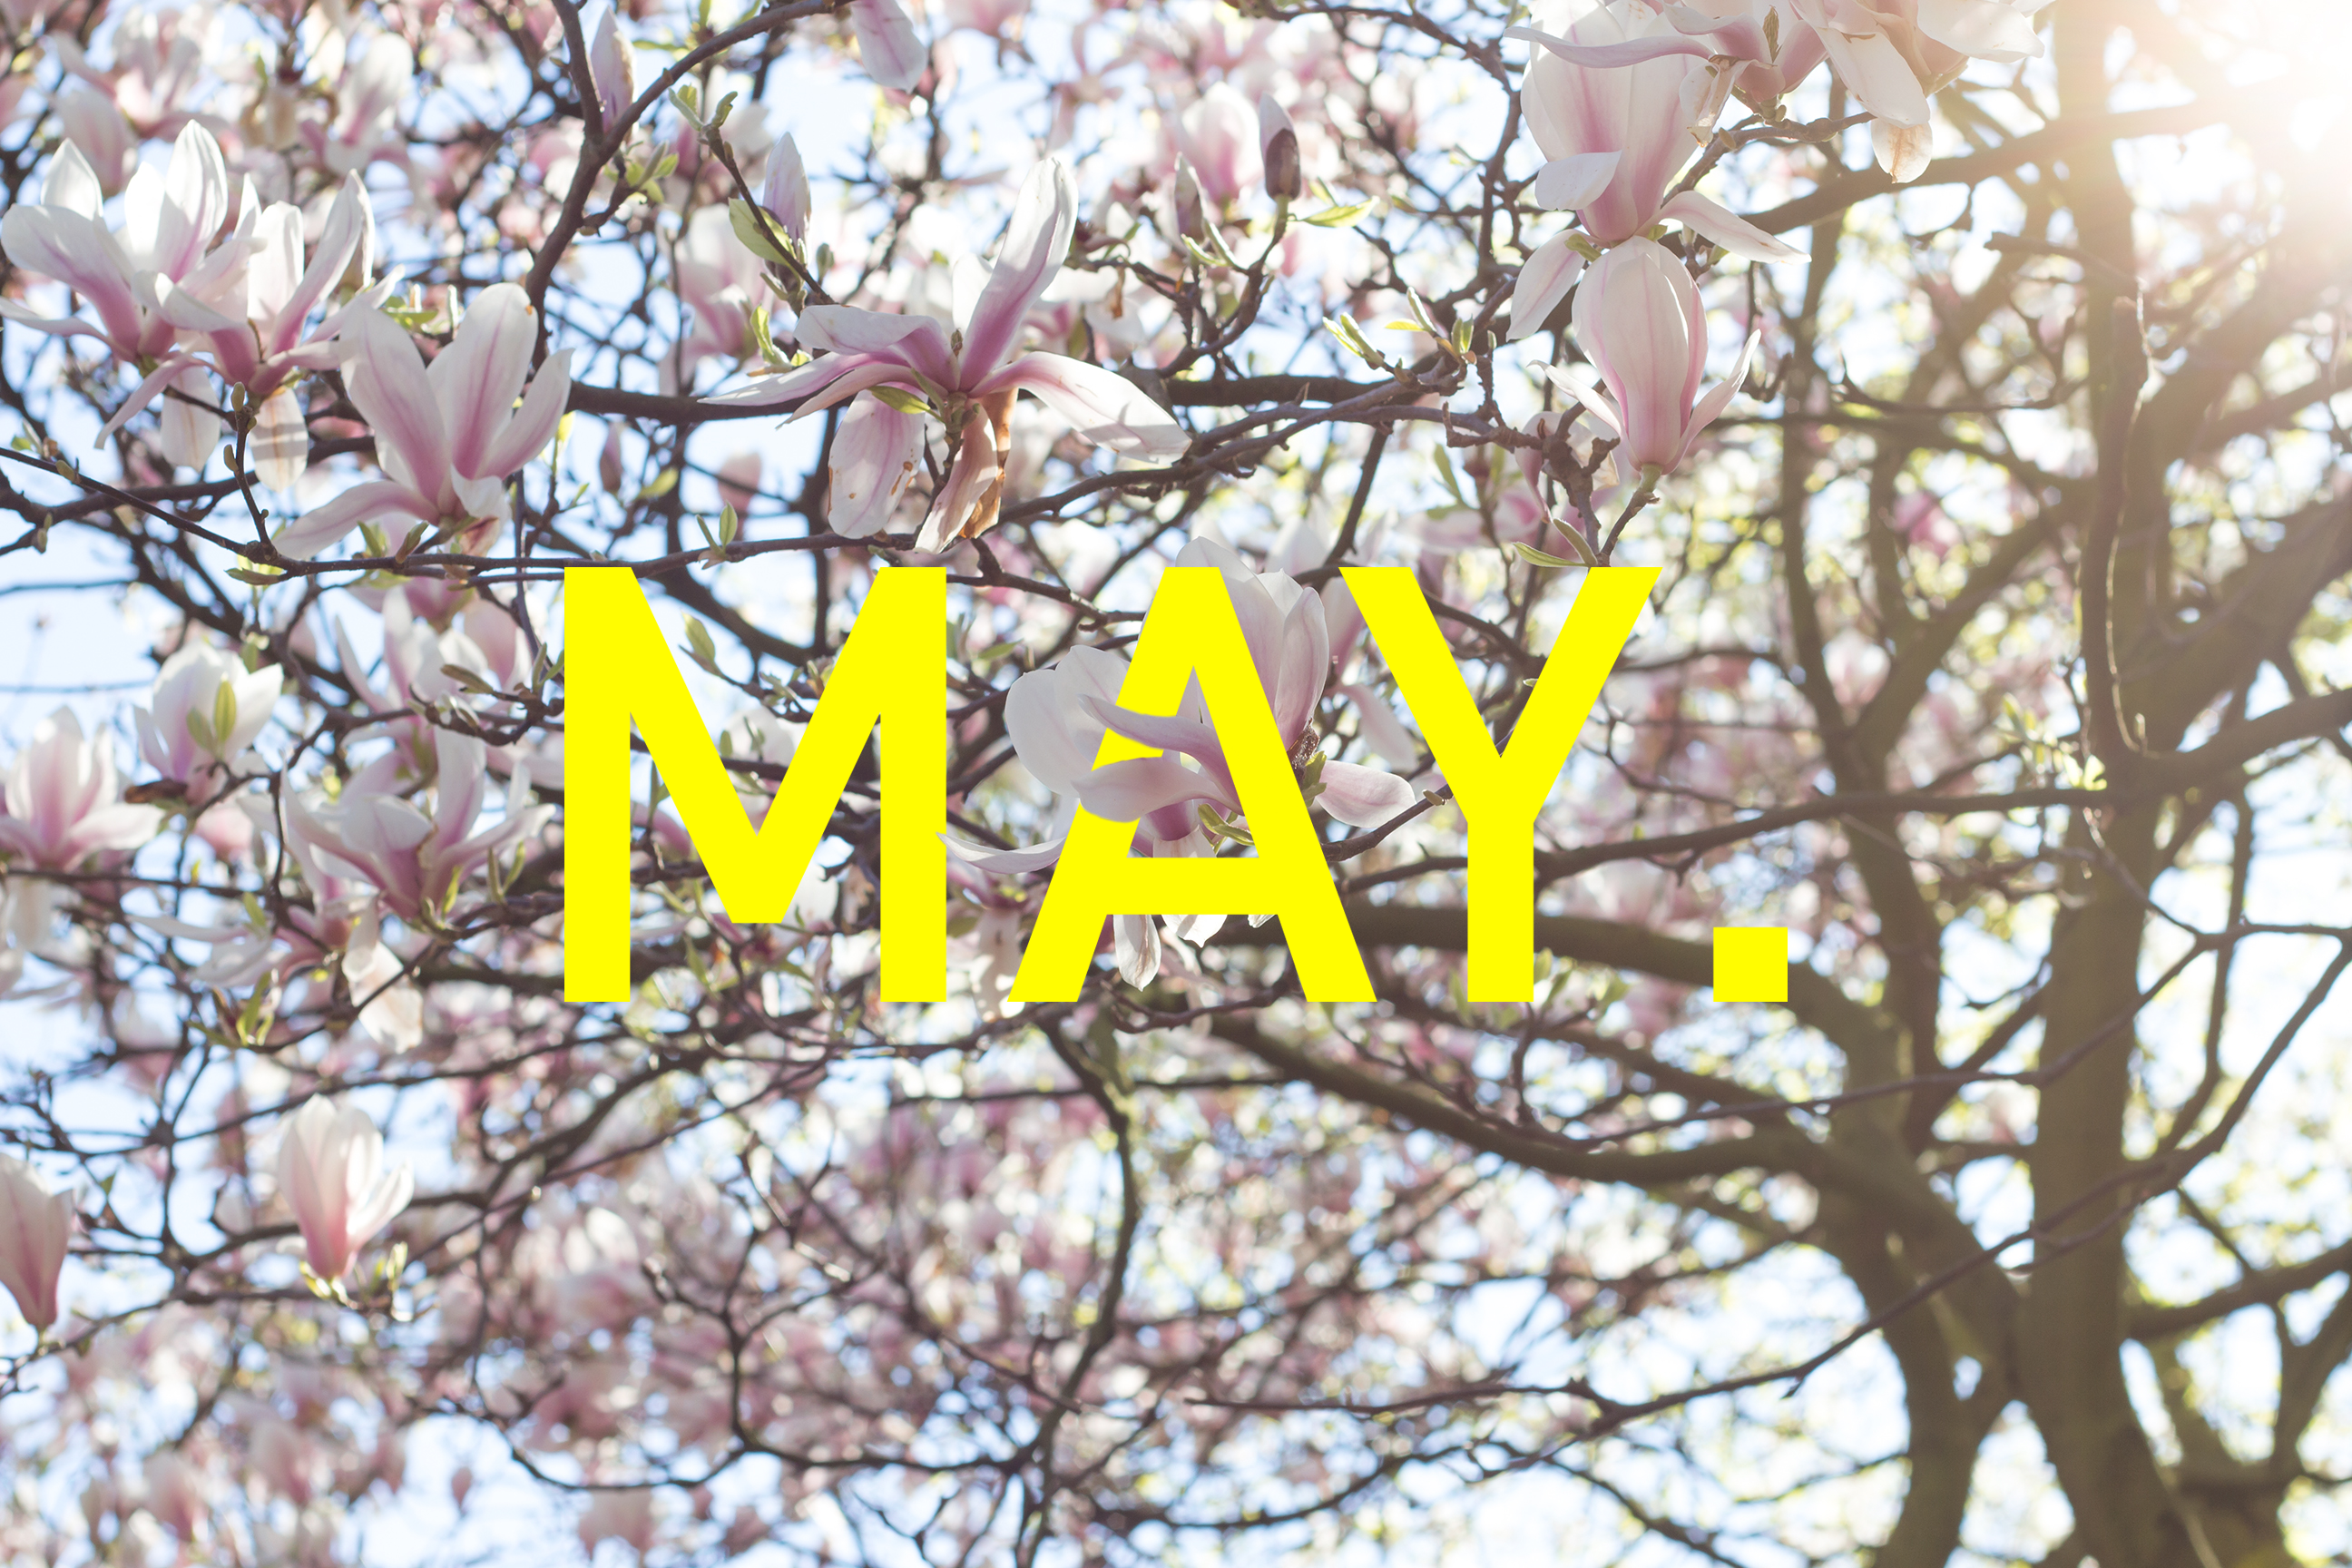 Wallpaper of the month, May. Free download for desktop, tablet & phone on the blog.